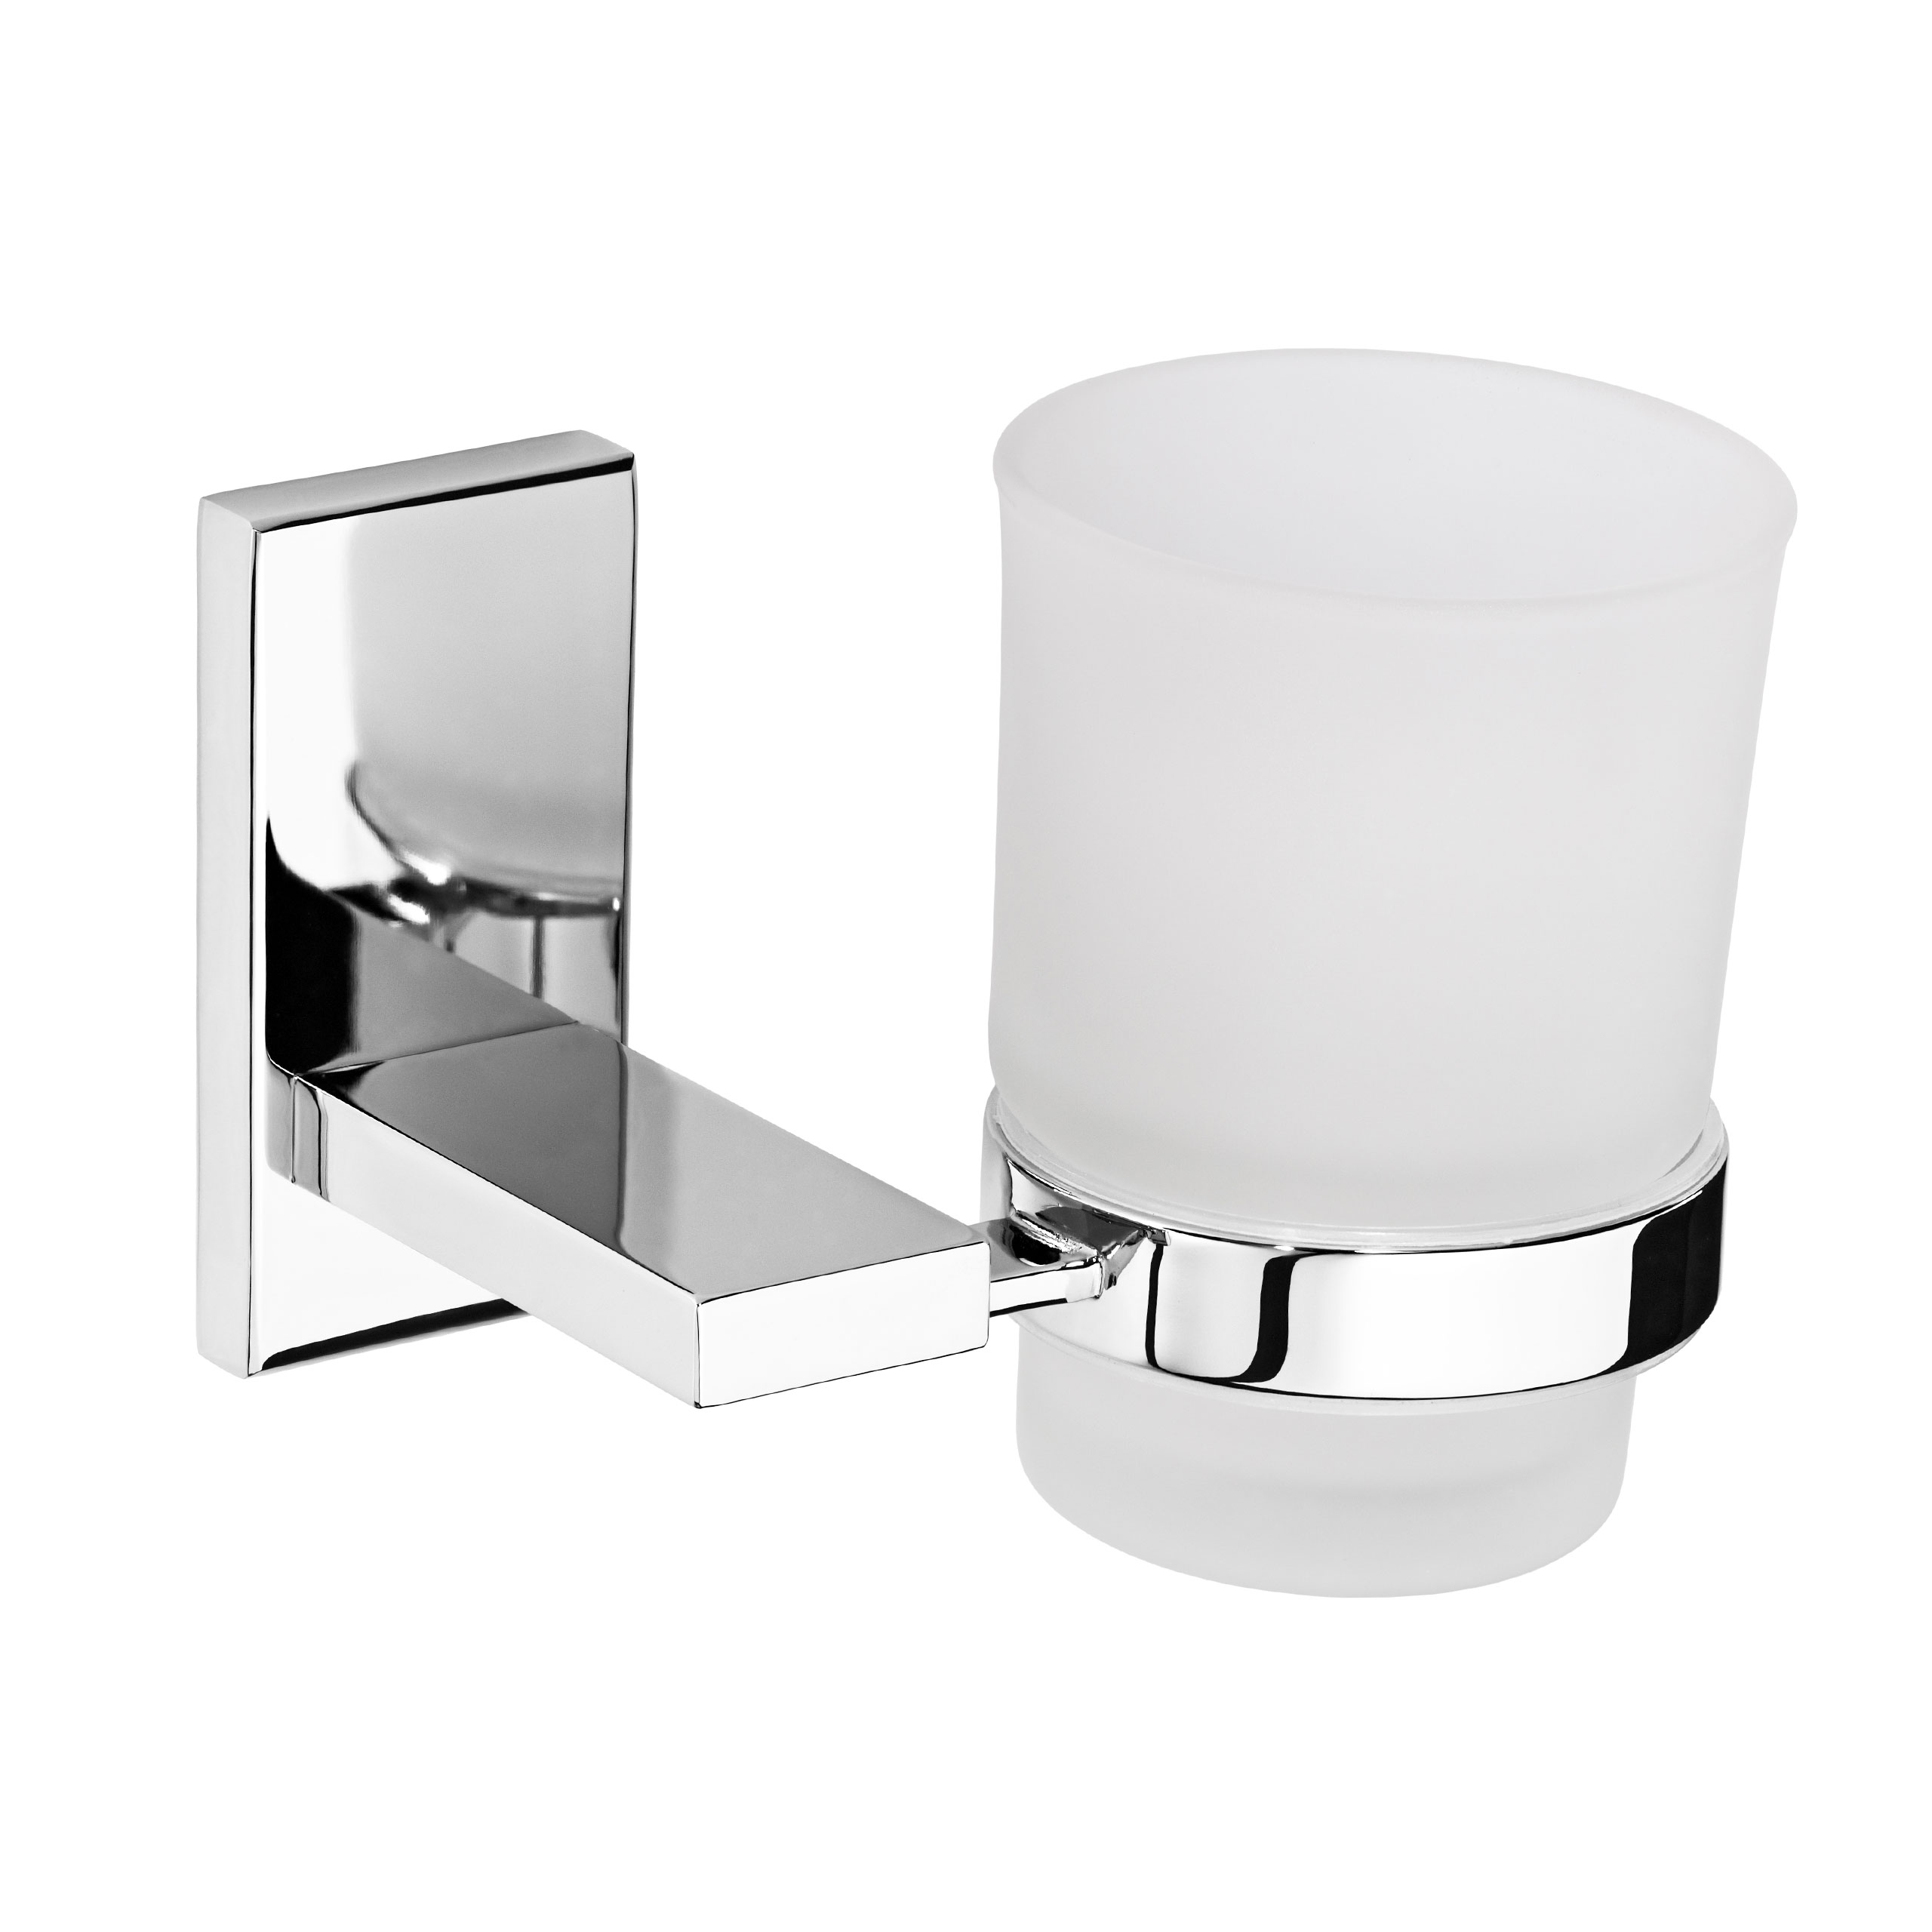 Tumbler Toothbrush Holder Glass Wall Mounted Classic Bathroom Accessory Ebay